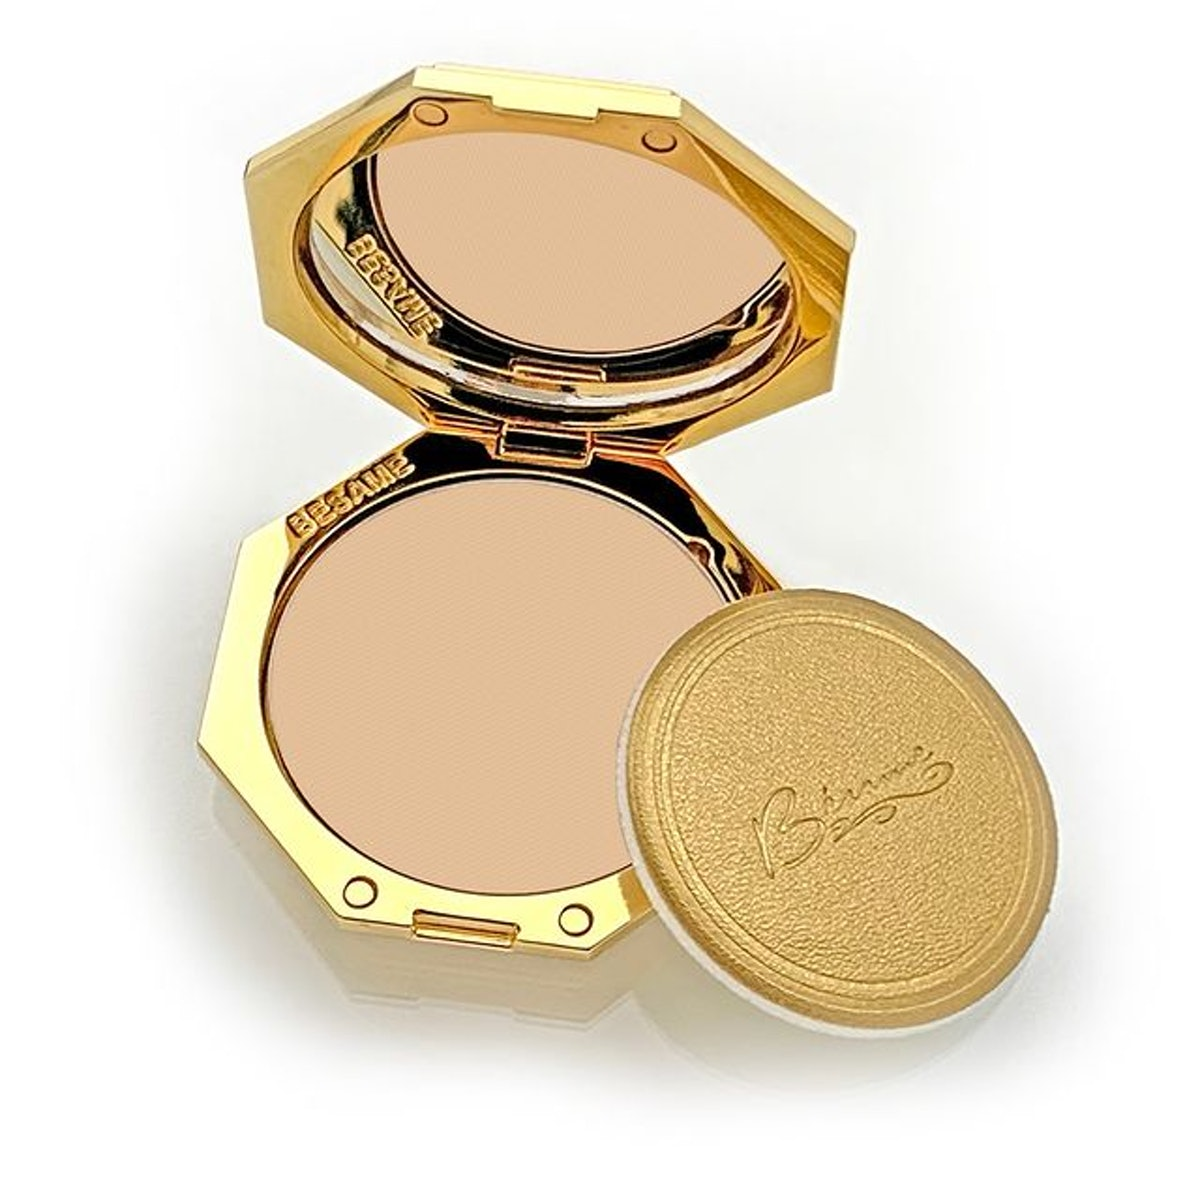 Refillable Pressed Powder Housed In a Vintage-Inspired Compact